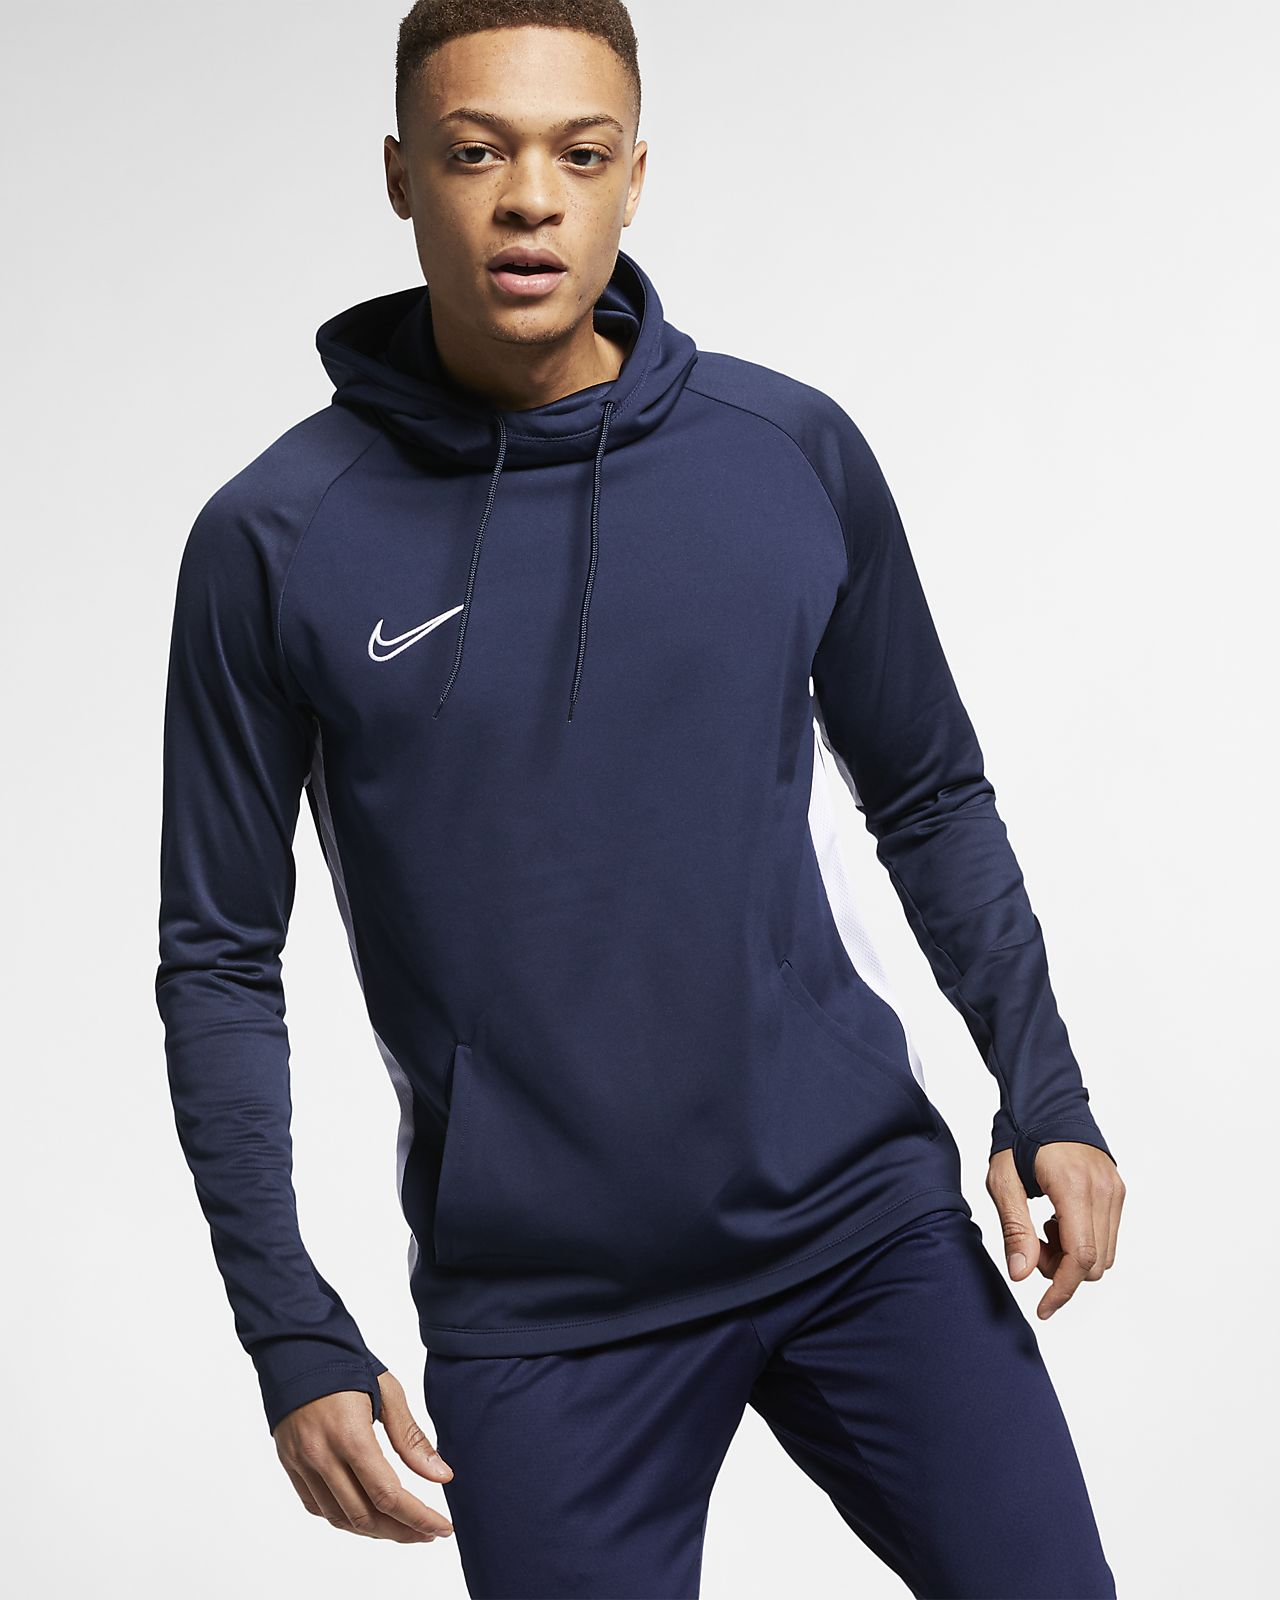 d0f7b5ad Nike Dri-FIT Academy Men's Football Pullover Hoodie. Nike.com SK